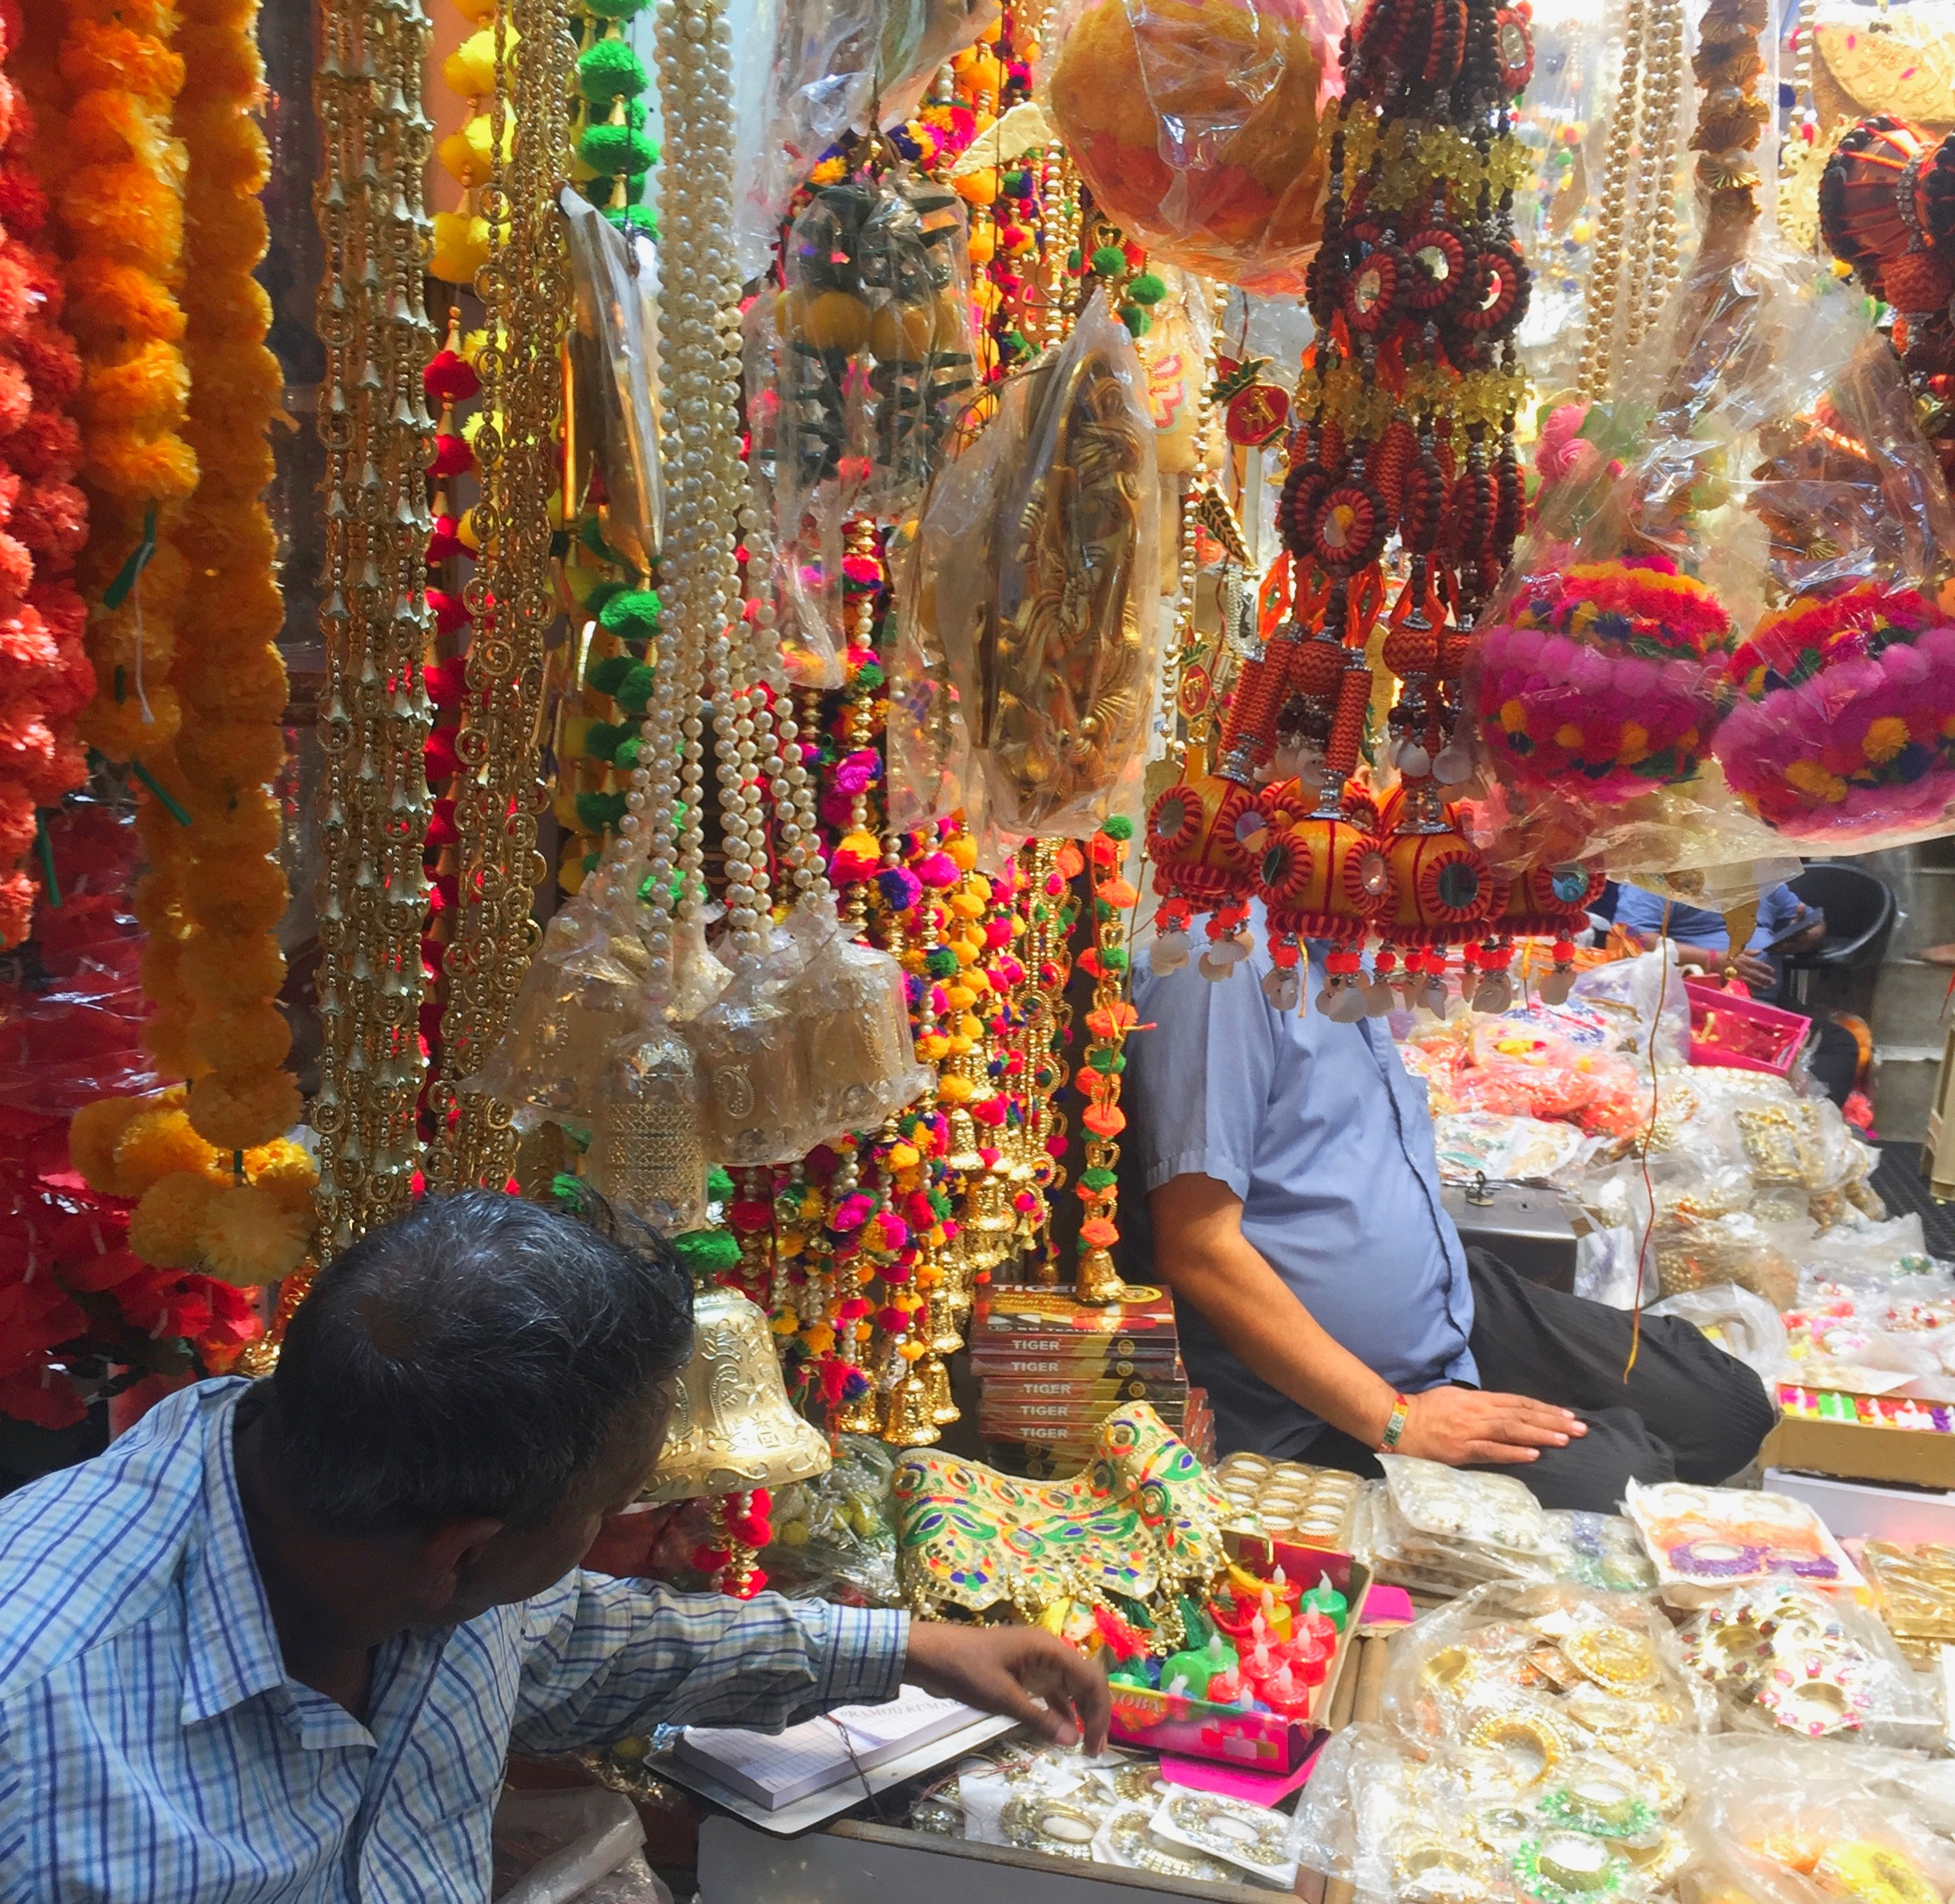 Day One: Shop one of the colourful bazaars of Delhi.